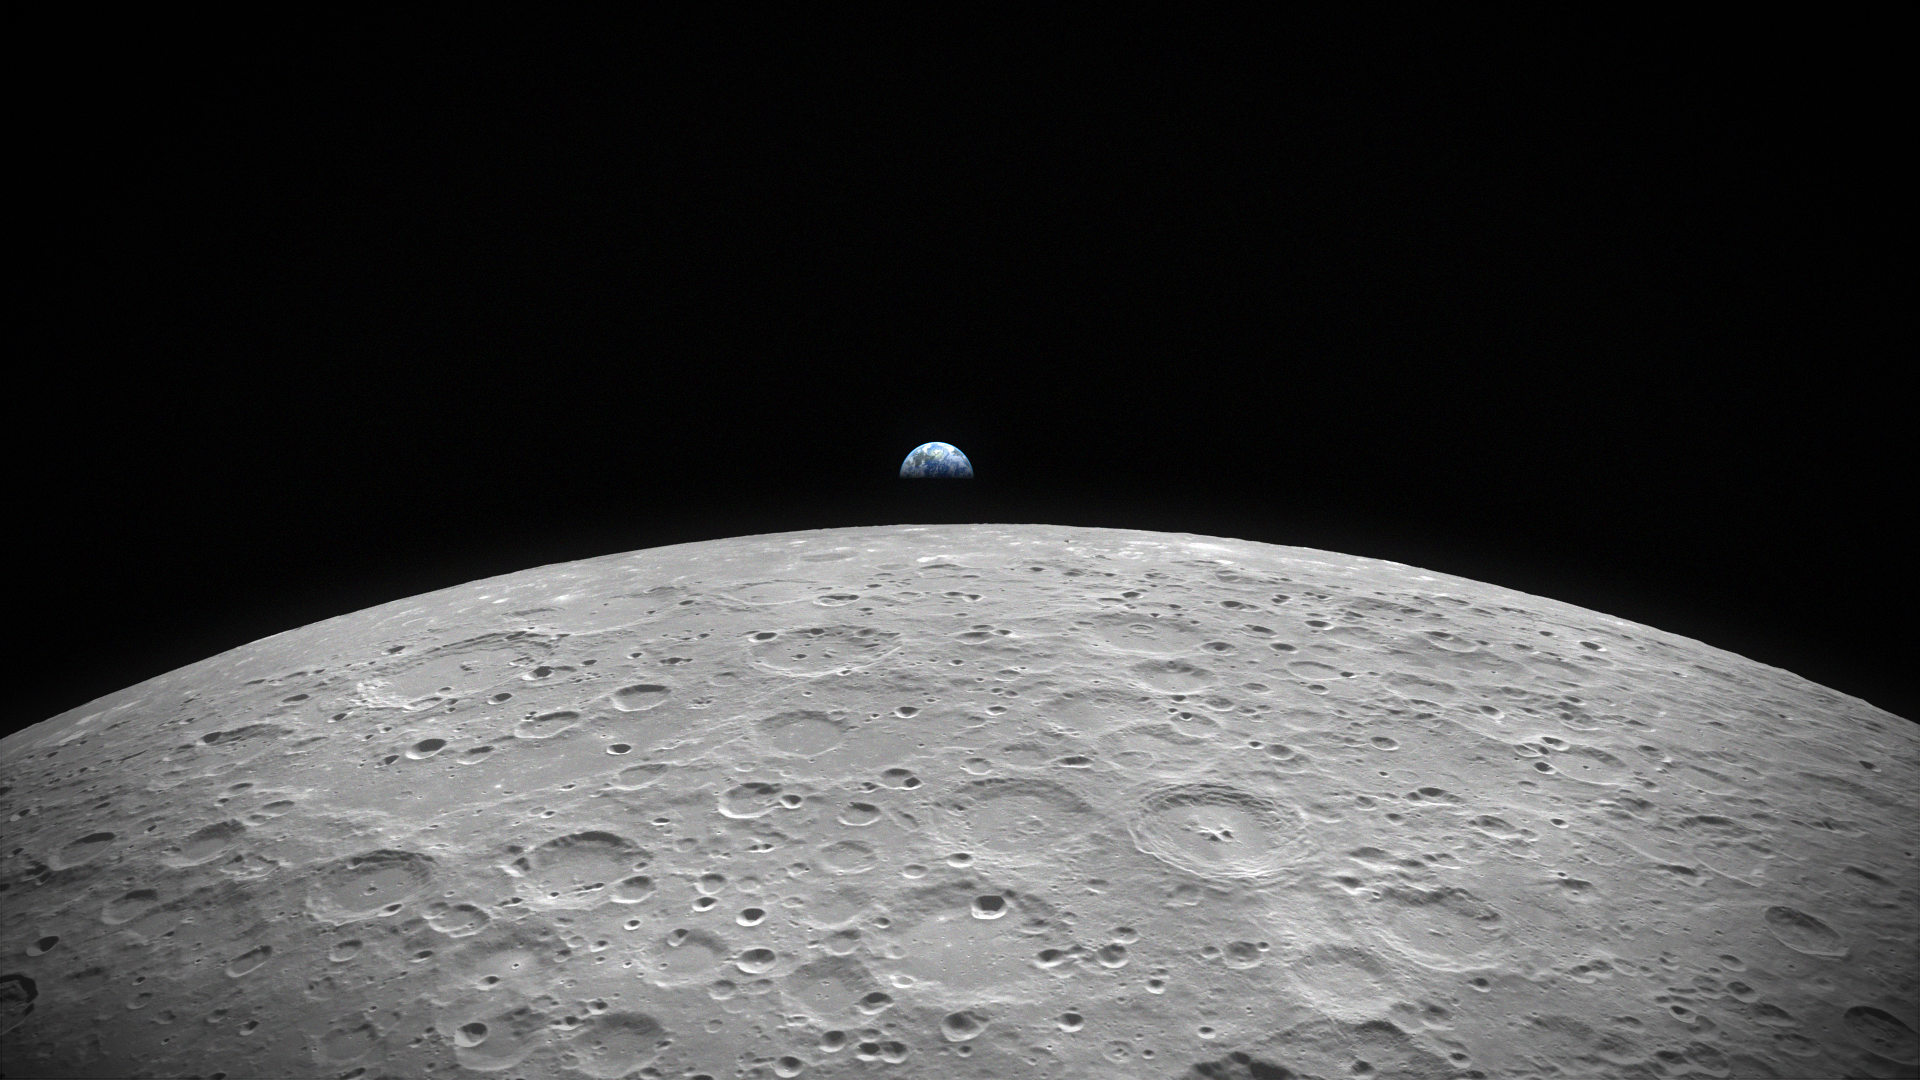 earth rise 1080pottothecat2005 on deviantart